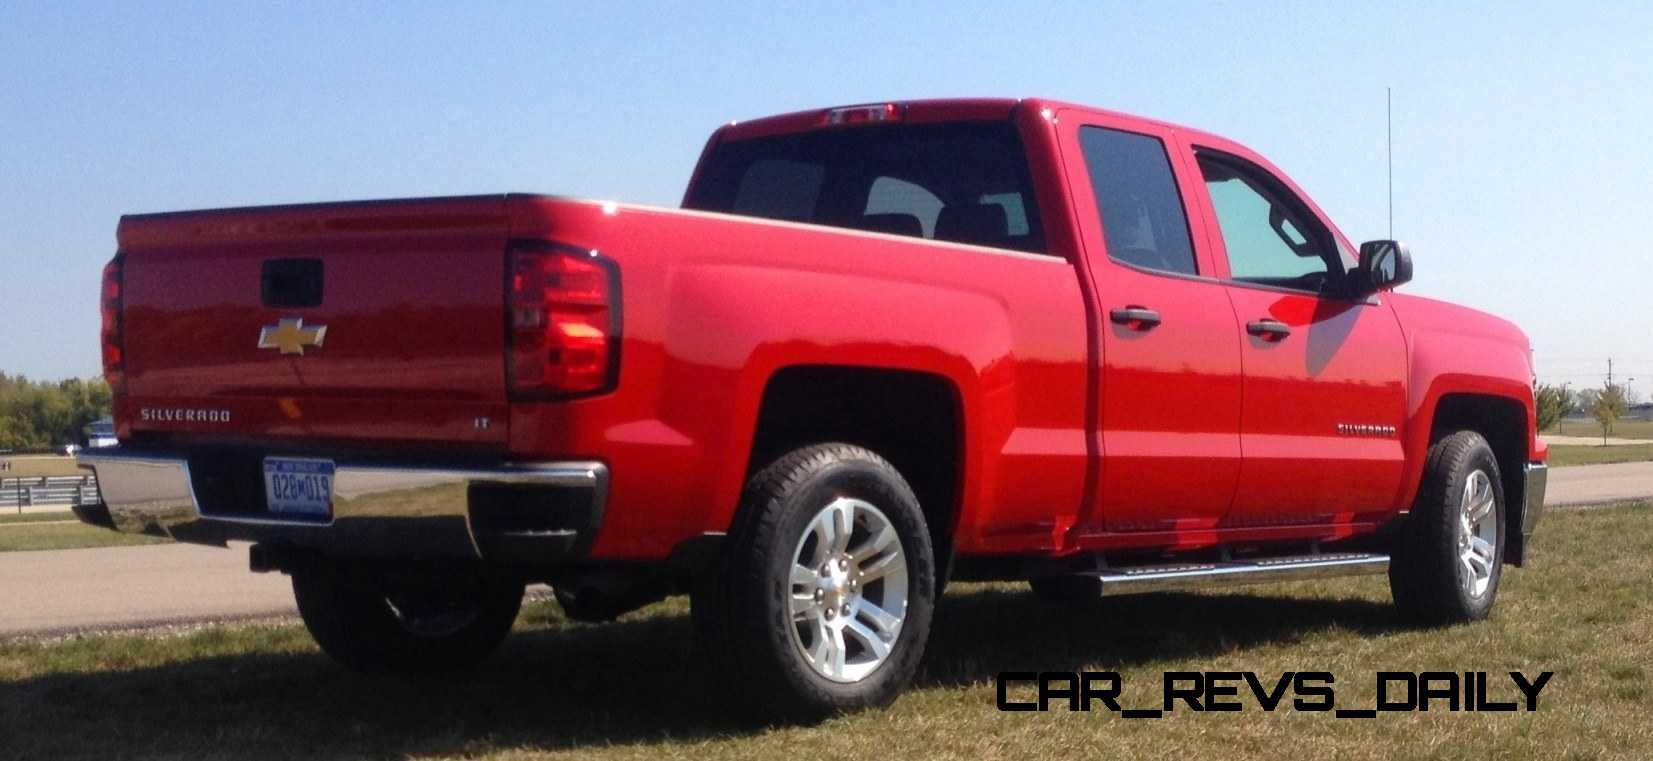 2014 Silverado 1500 LT An All-Star Truck for All Seasons - Mega Galleries64